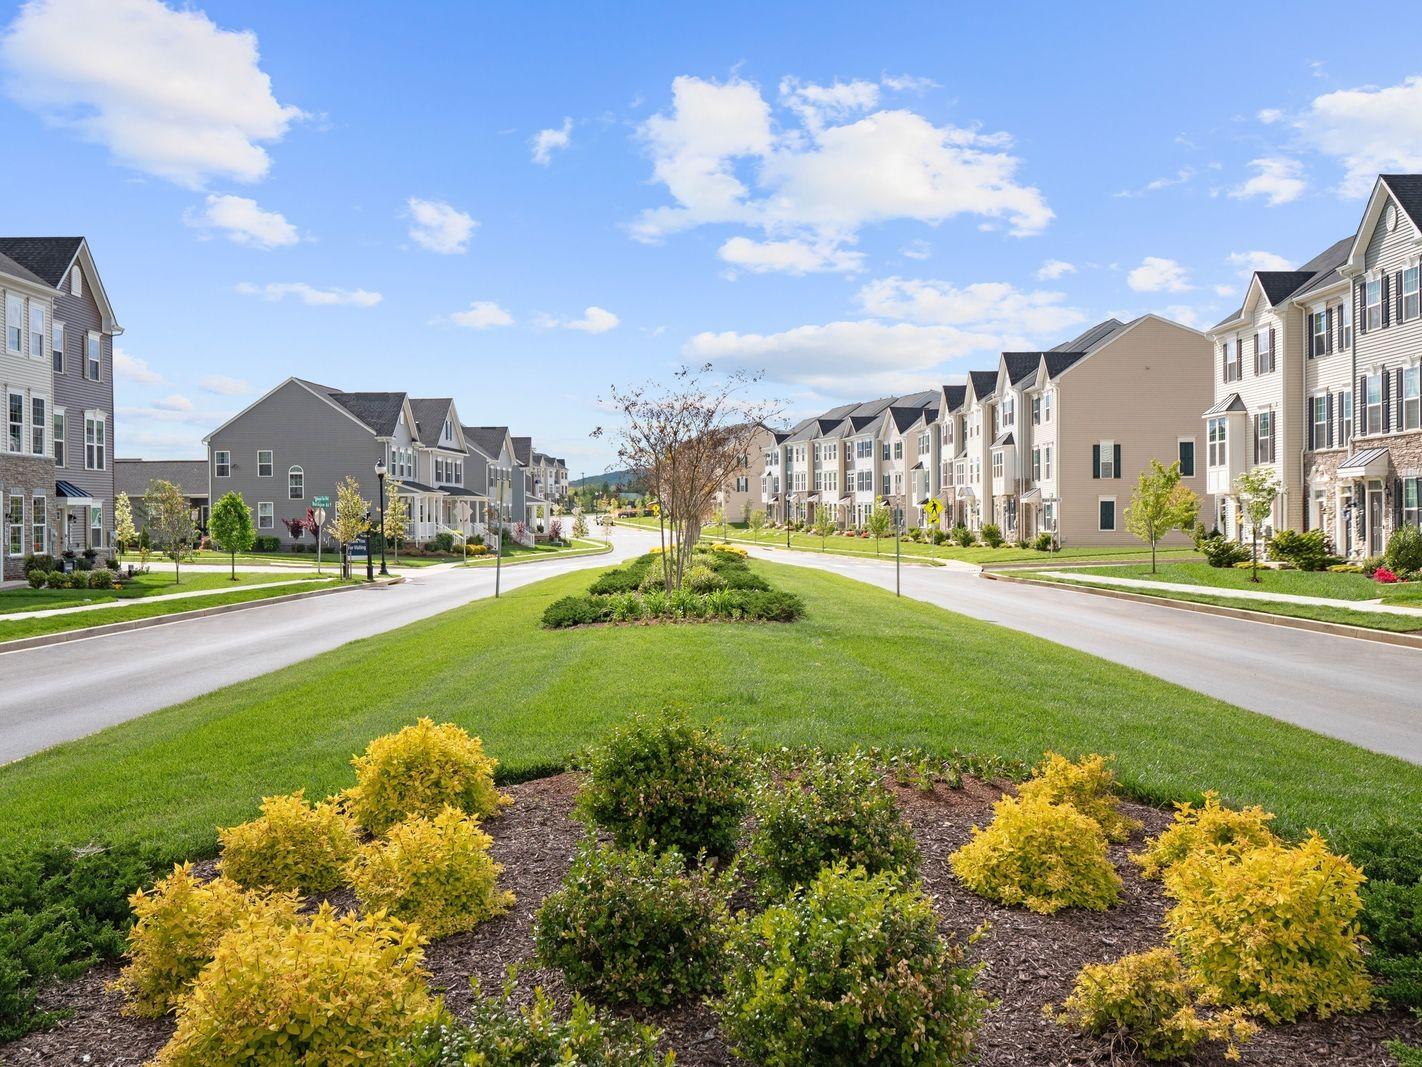 WELCOME TO BALLENGER RUN - FREDERICK'S BEST SELLING COMMUNITY!